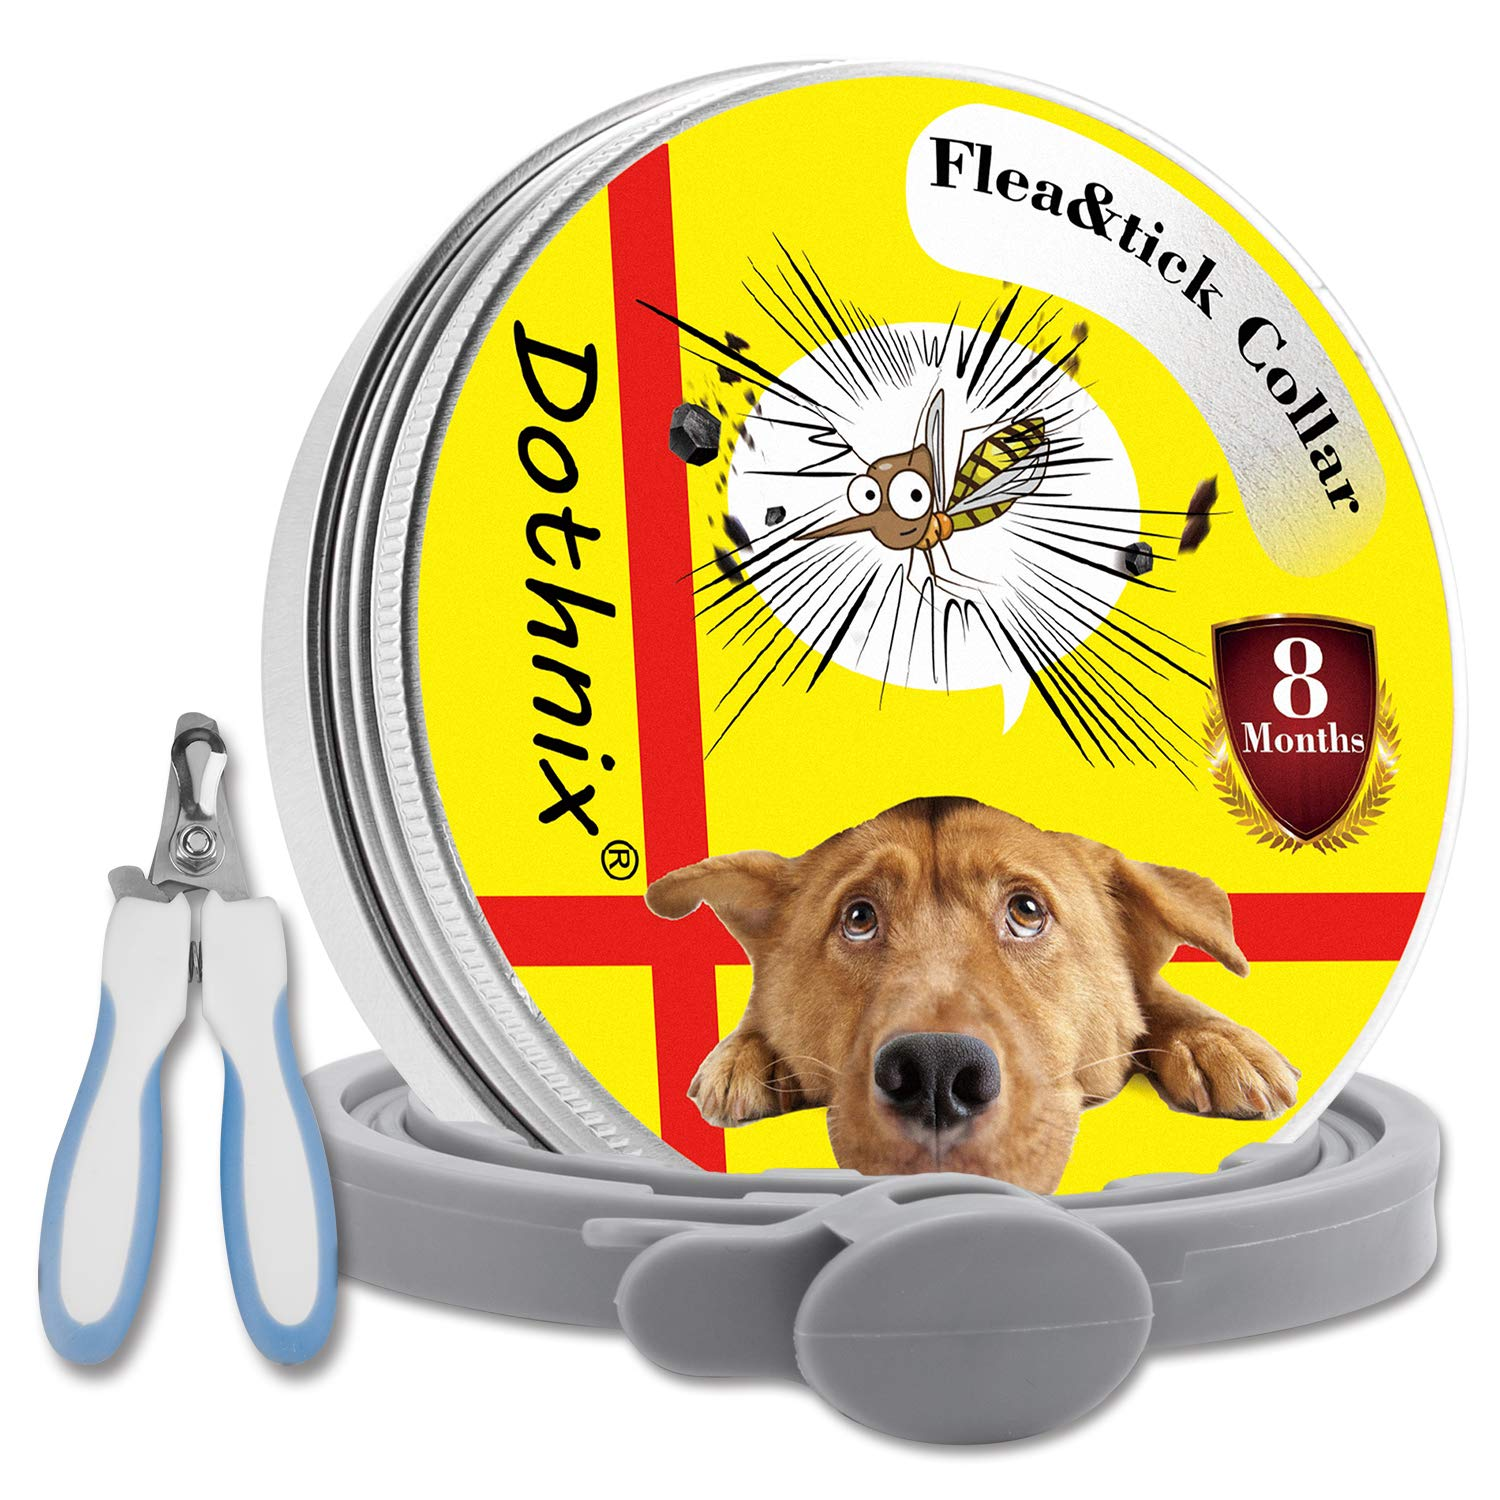 Dothnix Flea and Tick Collar for Dogs,Waterproof Adjustable Anti Flea Collar, with Nail Clippers Scissors for Pets(55cm)